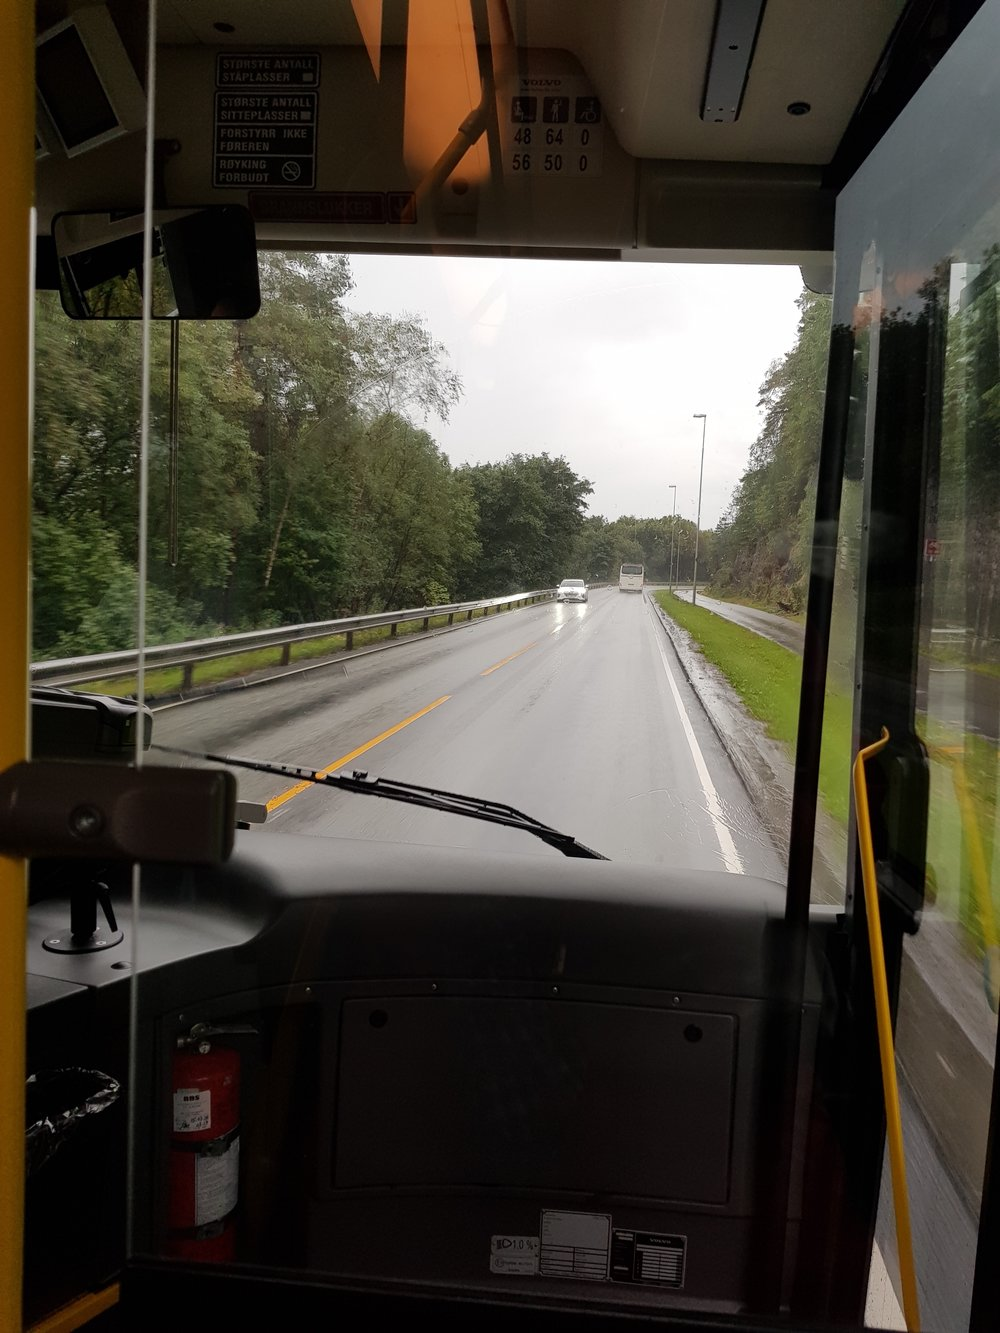 My comfort zone: Sitting on a bus, on a rainy day